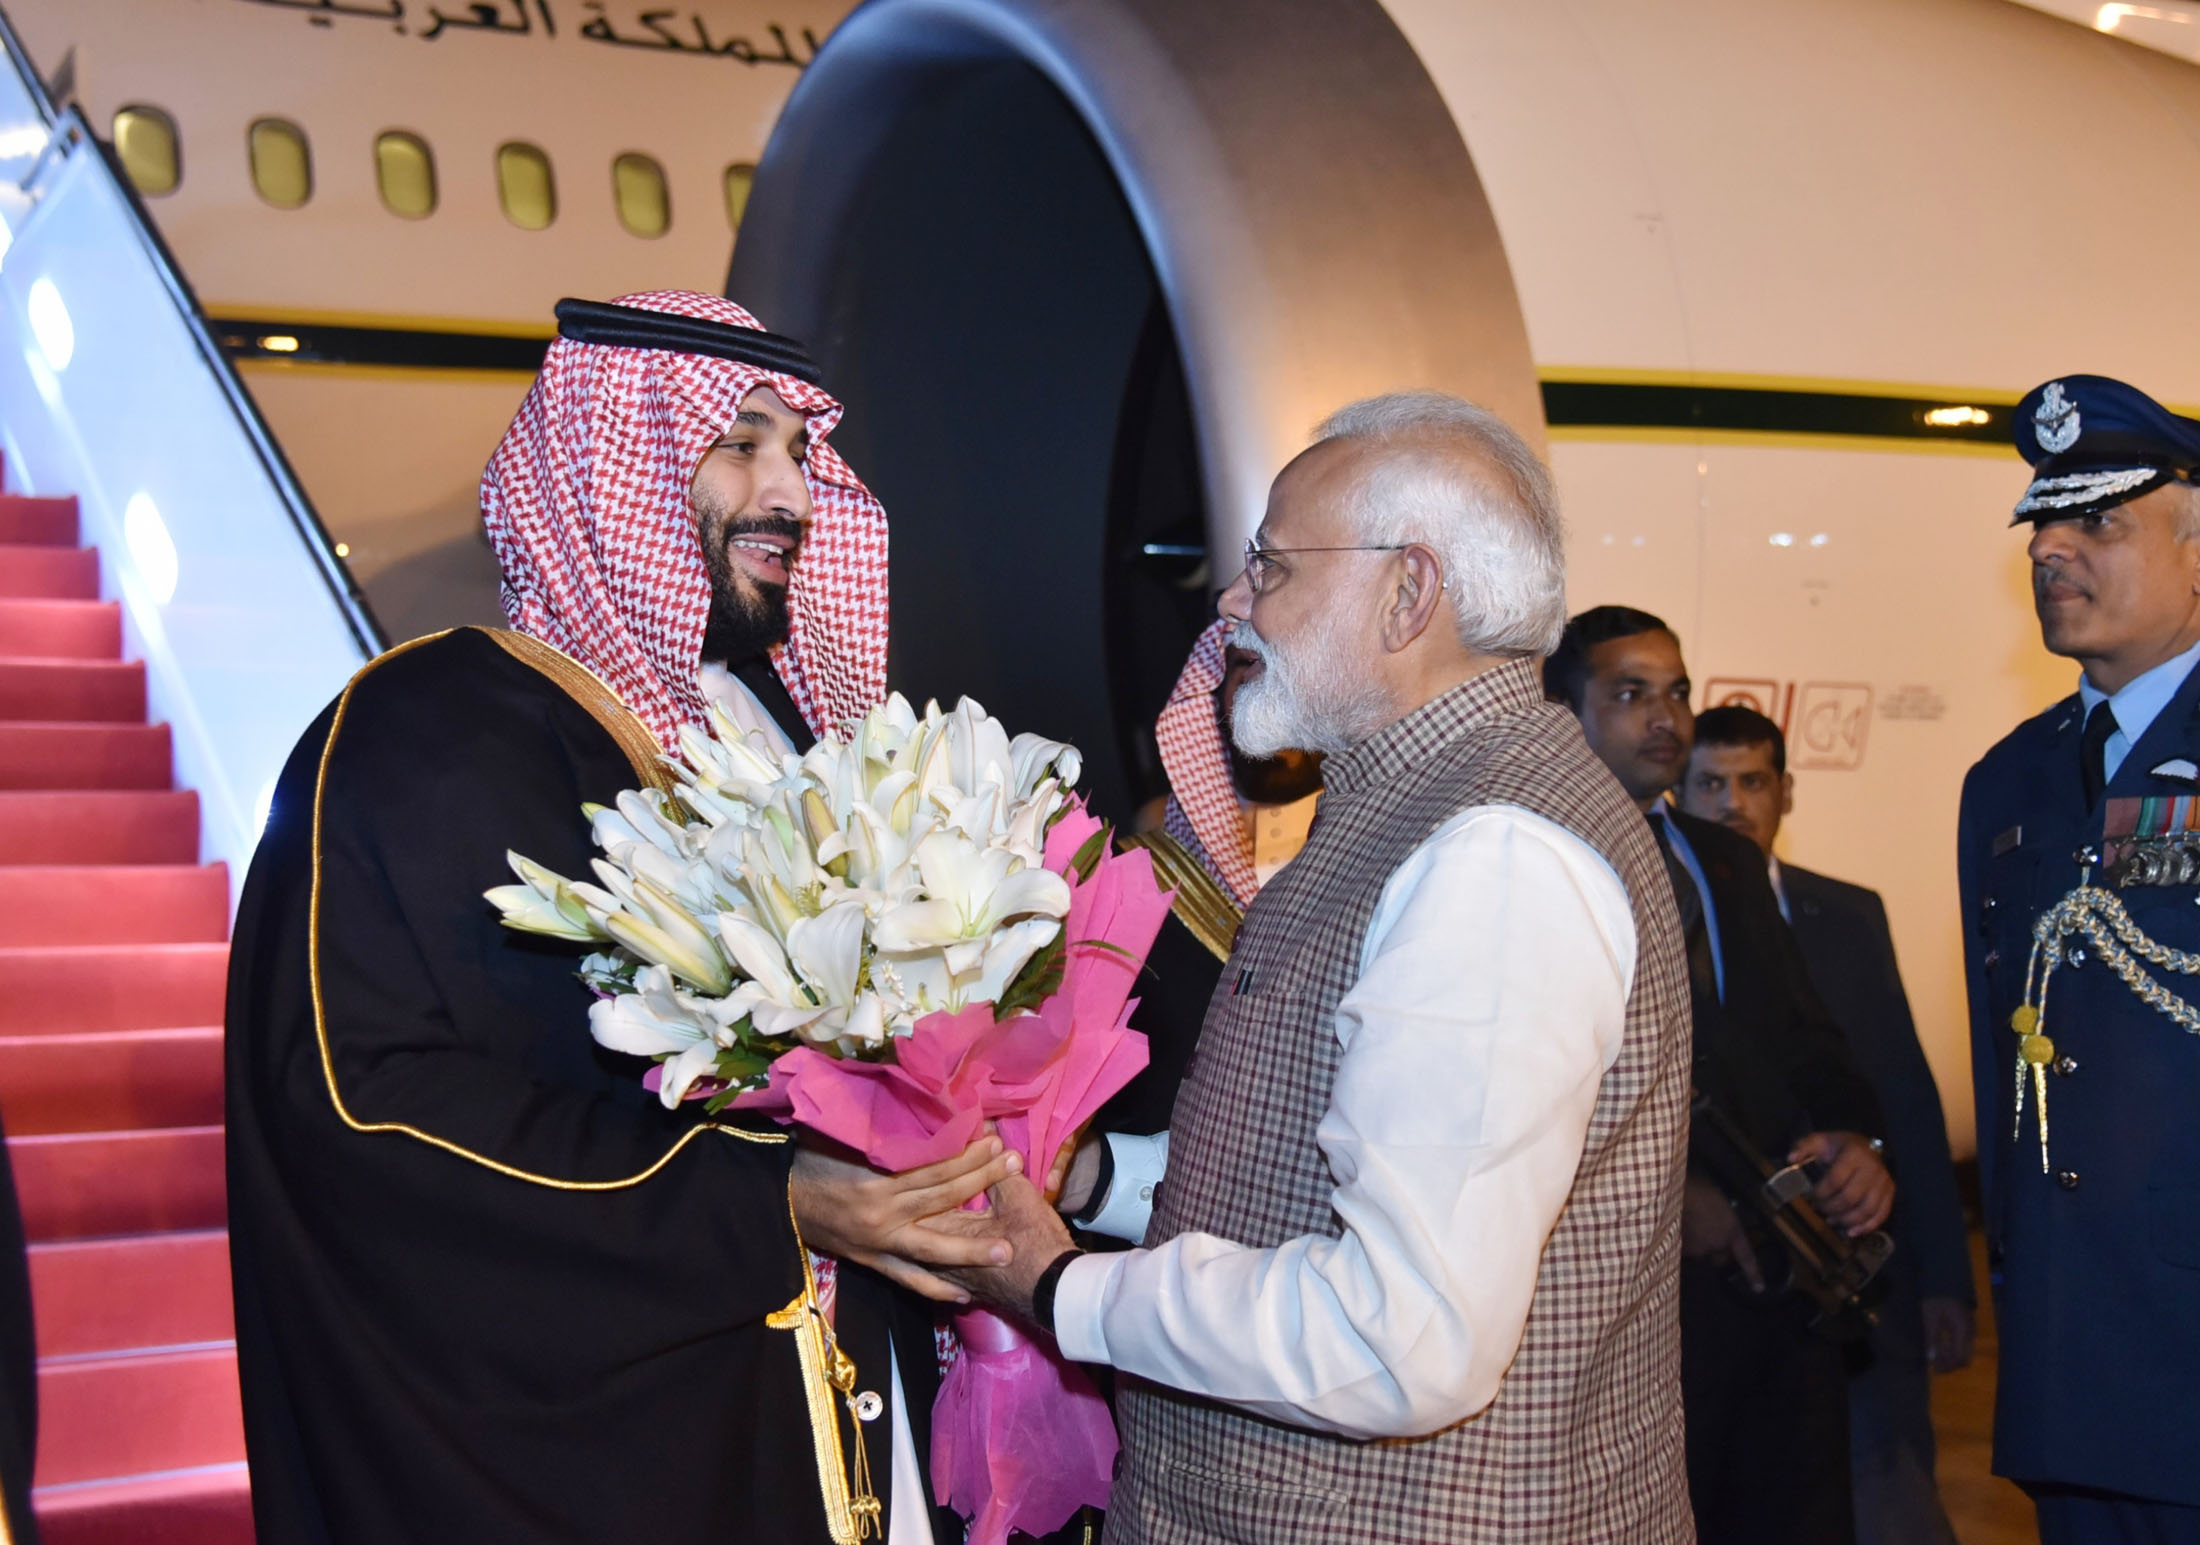 The Crown Prince, Vice President of the Council of Ministers of Defence of the Kingdom of Saudi Arabia, Prince Mohammed Bin Salman Bin Abdulaziz Al-Saud being received by the Prime Minister, Shri Narendra Modi, on his arrival, at New Delhi on February 19, 2019.